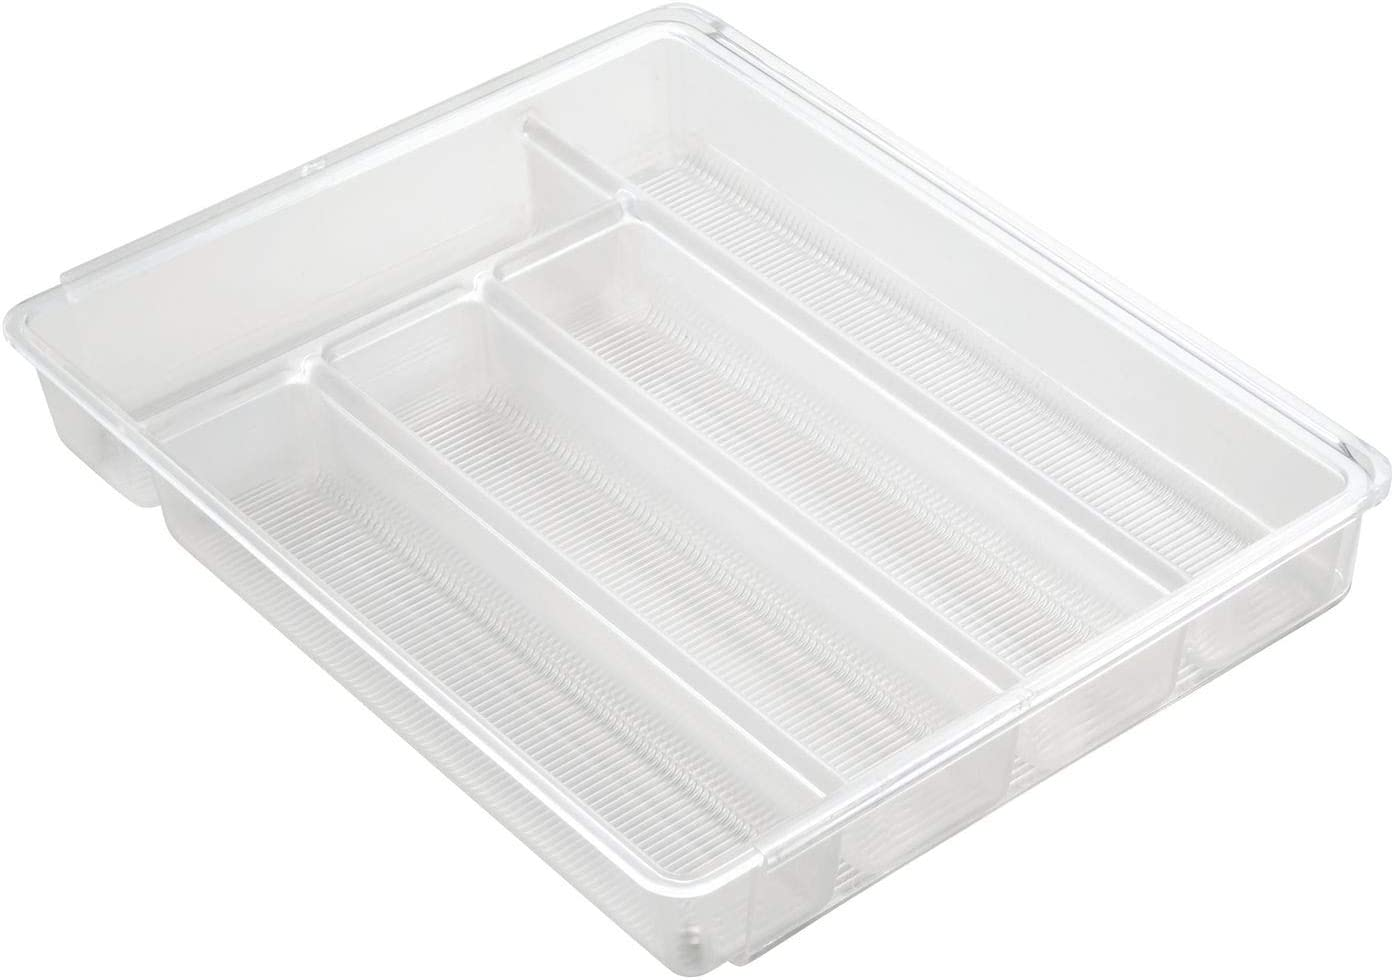 iDesign Linus Expandable Kitchen Drawer Organizer for Silverware, Spatulas, Gadgets - Clear